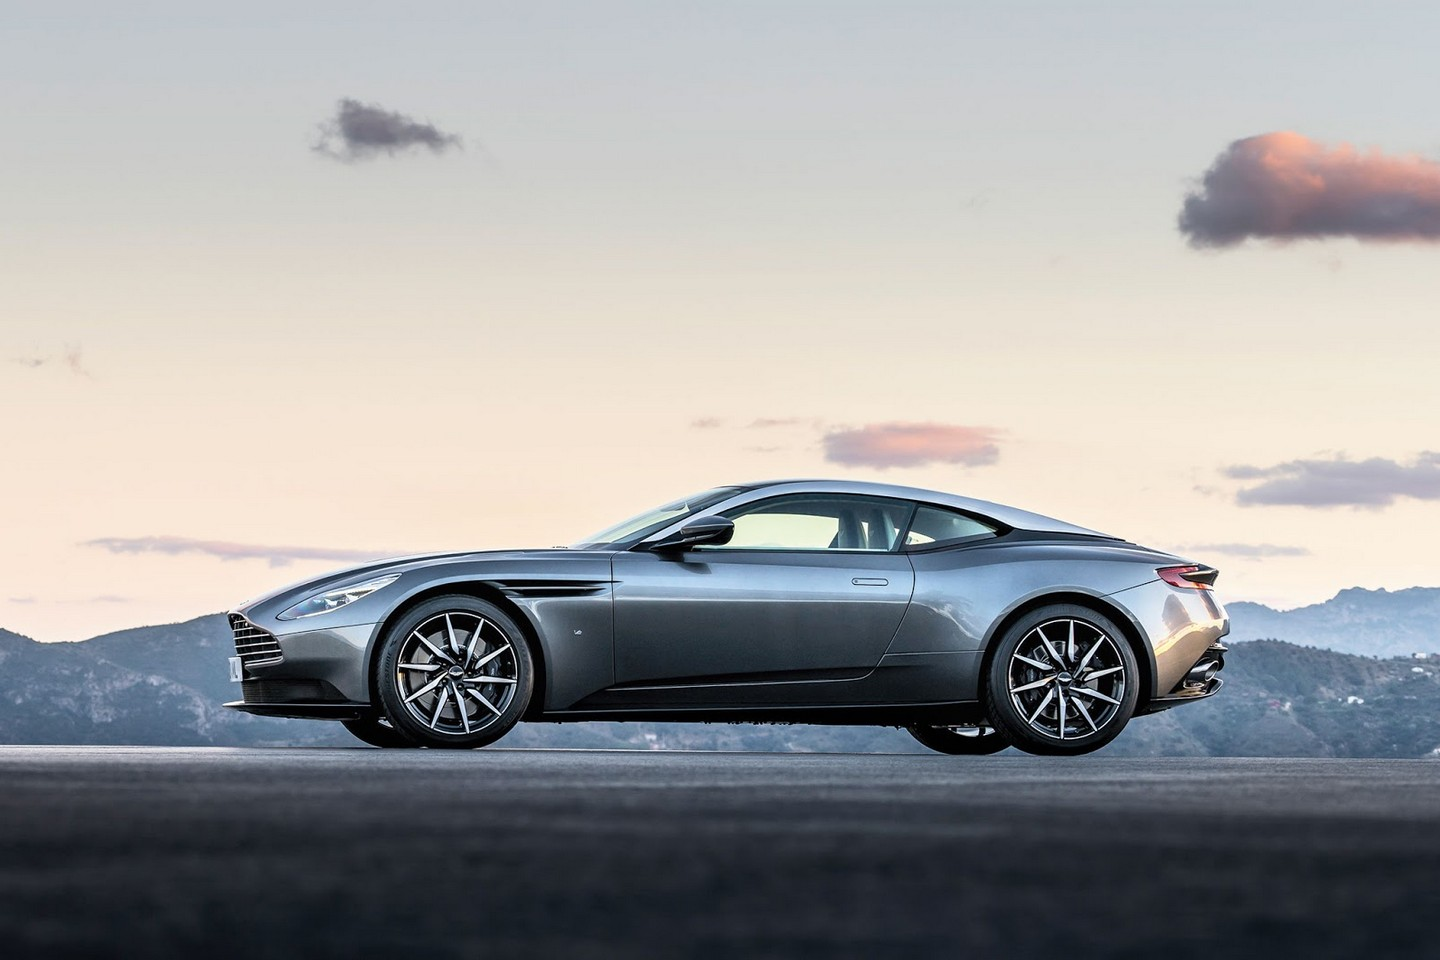 aston martin db11 breaks cover ahead of geneva debut. Black Bedroom Furniture Sets. Home Design Ideas